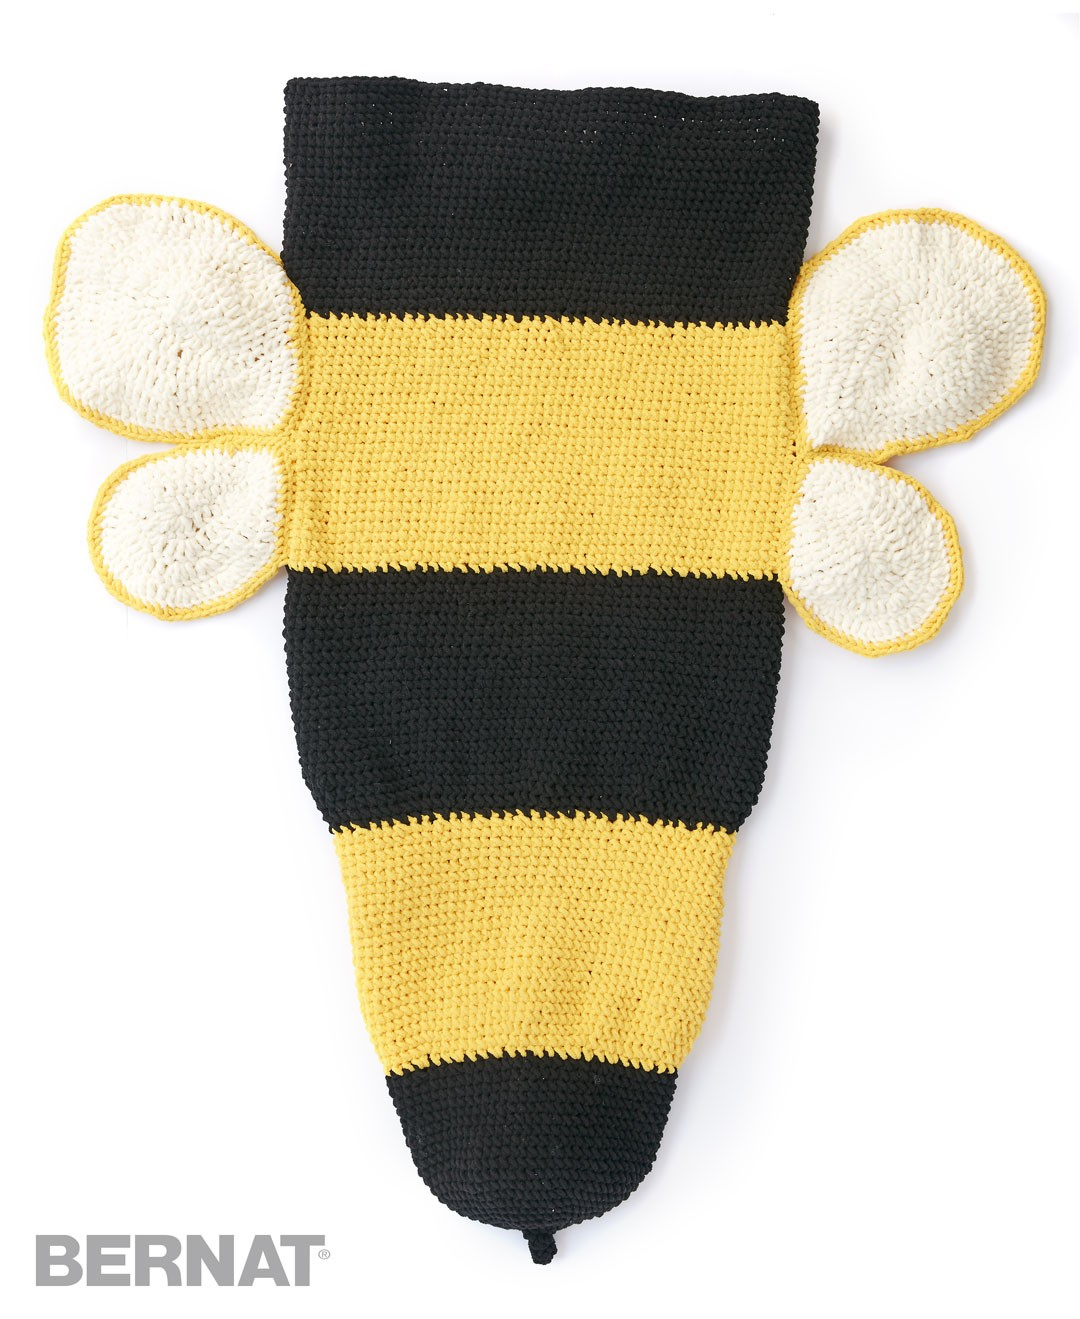 Bumble Bee Crochet Snuggle Sack